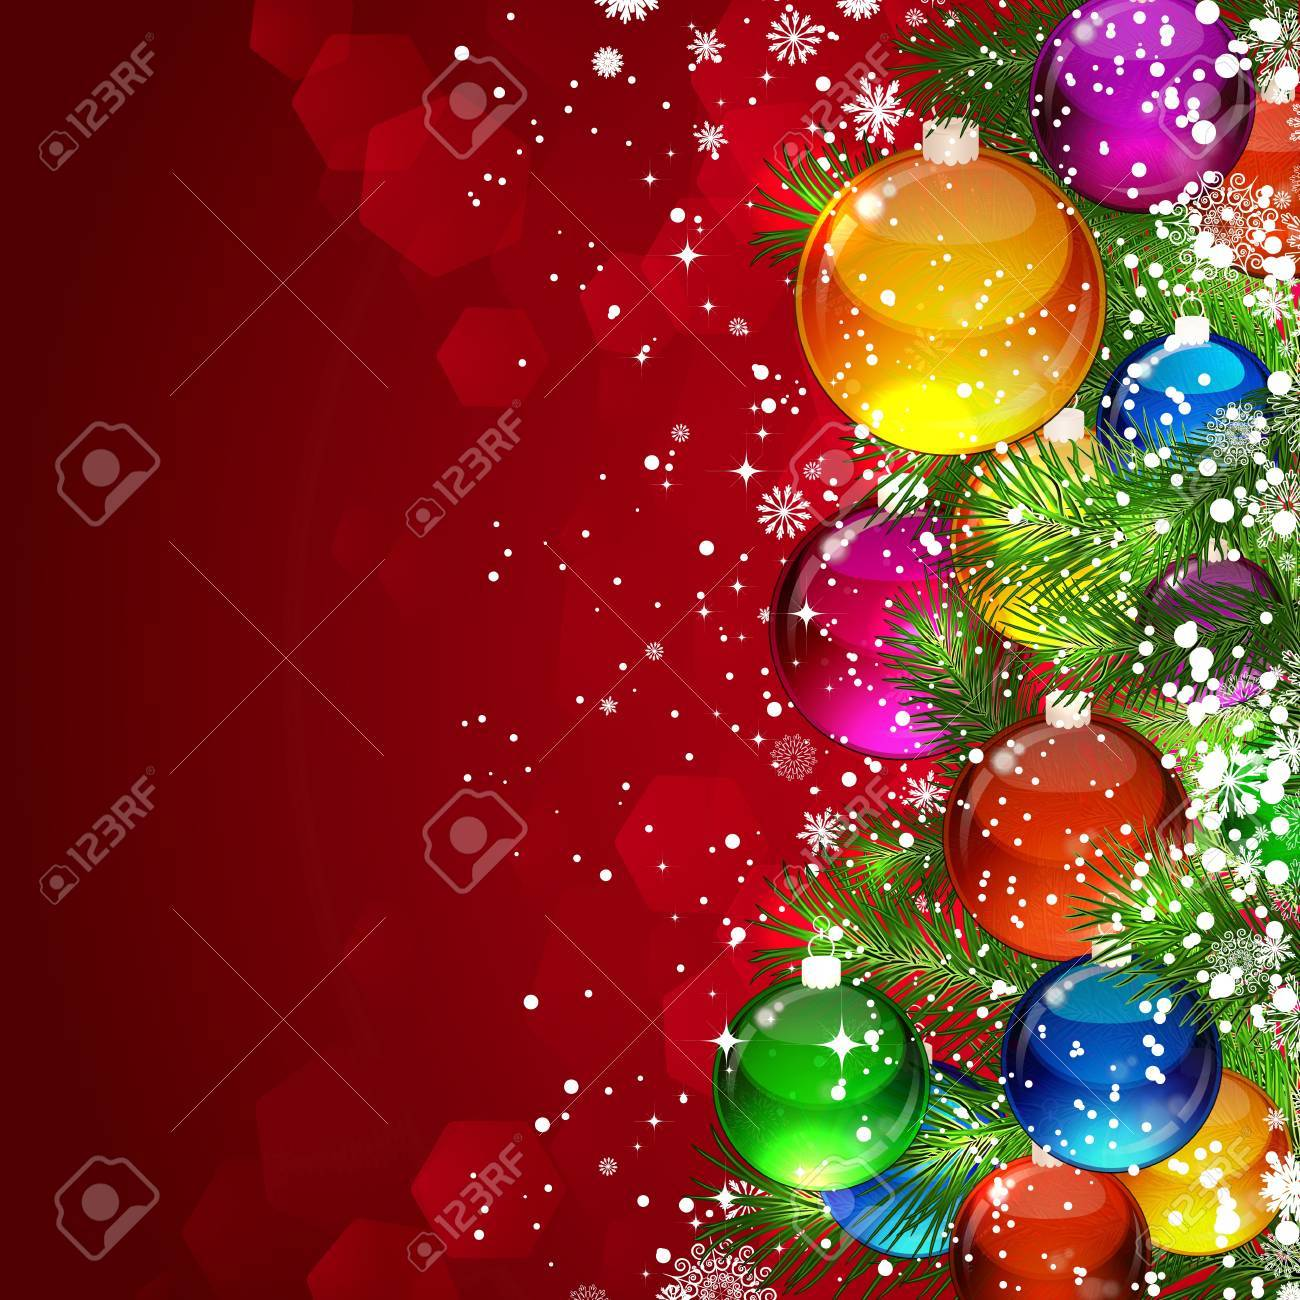 Christmas background with snow-covered Christmas tree decorated with glass balls Stock Vector - 9542217